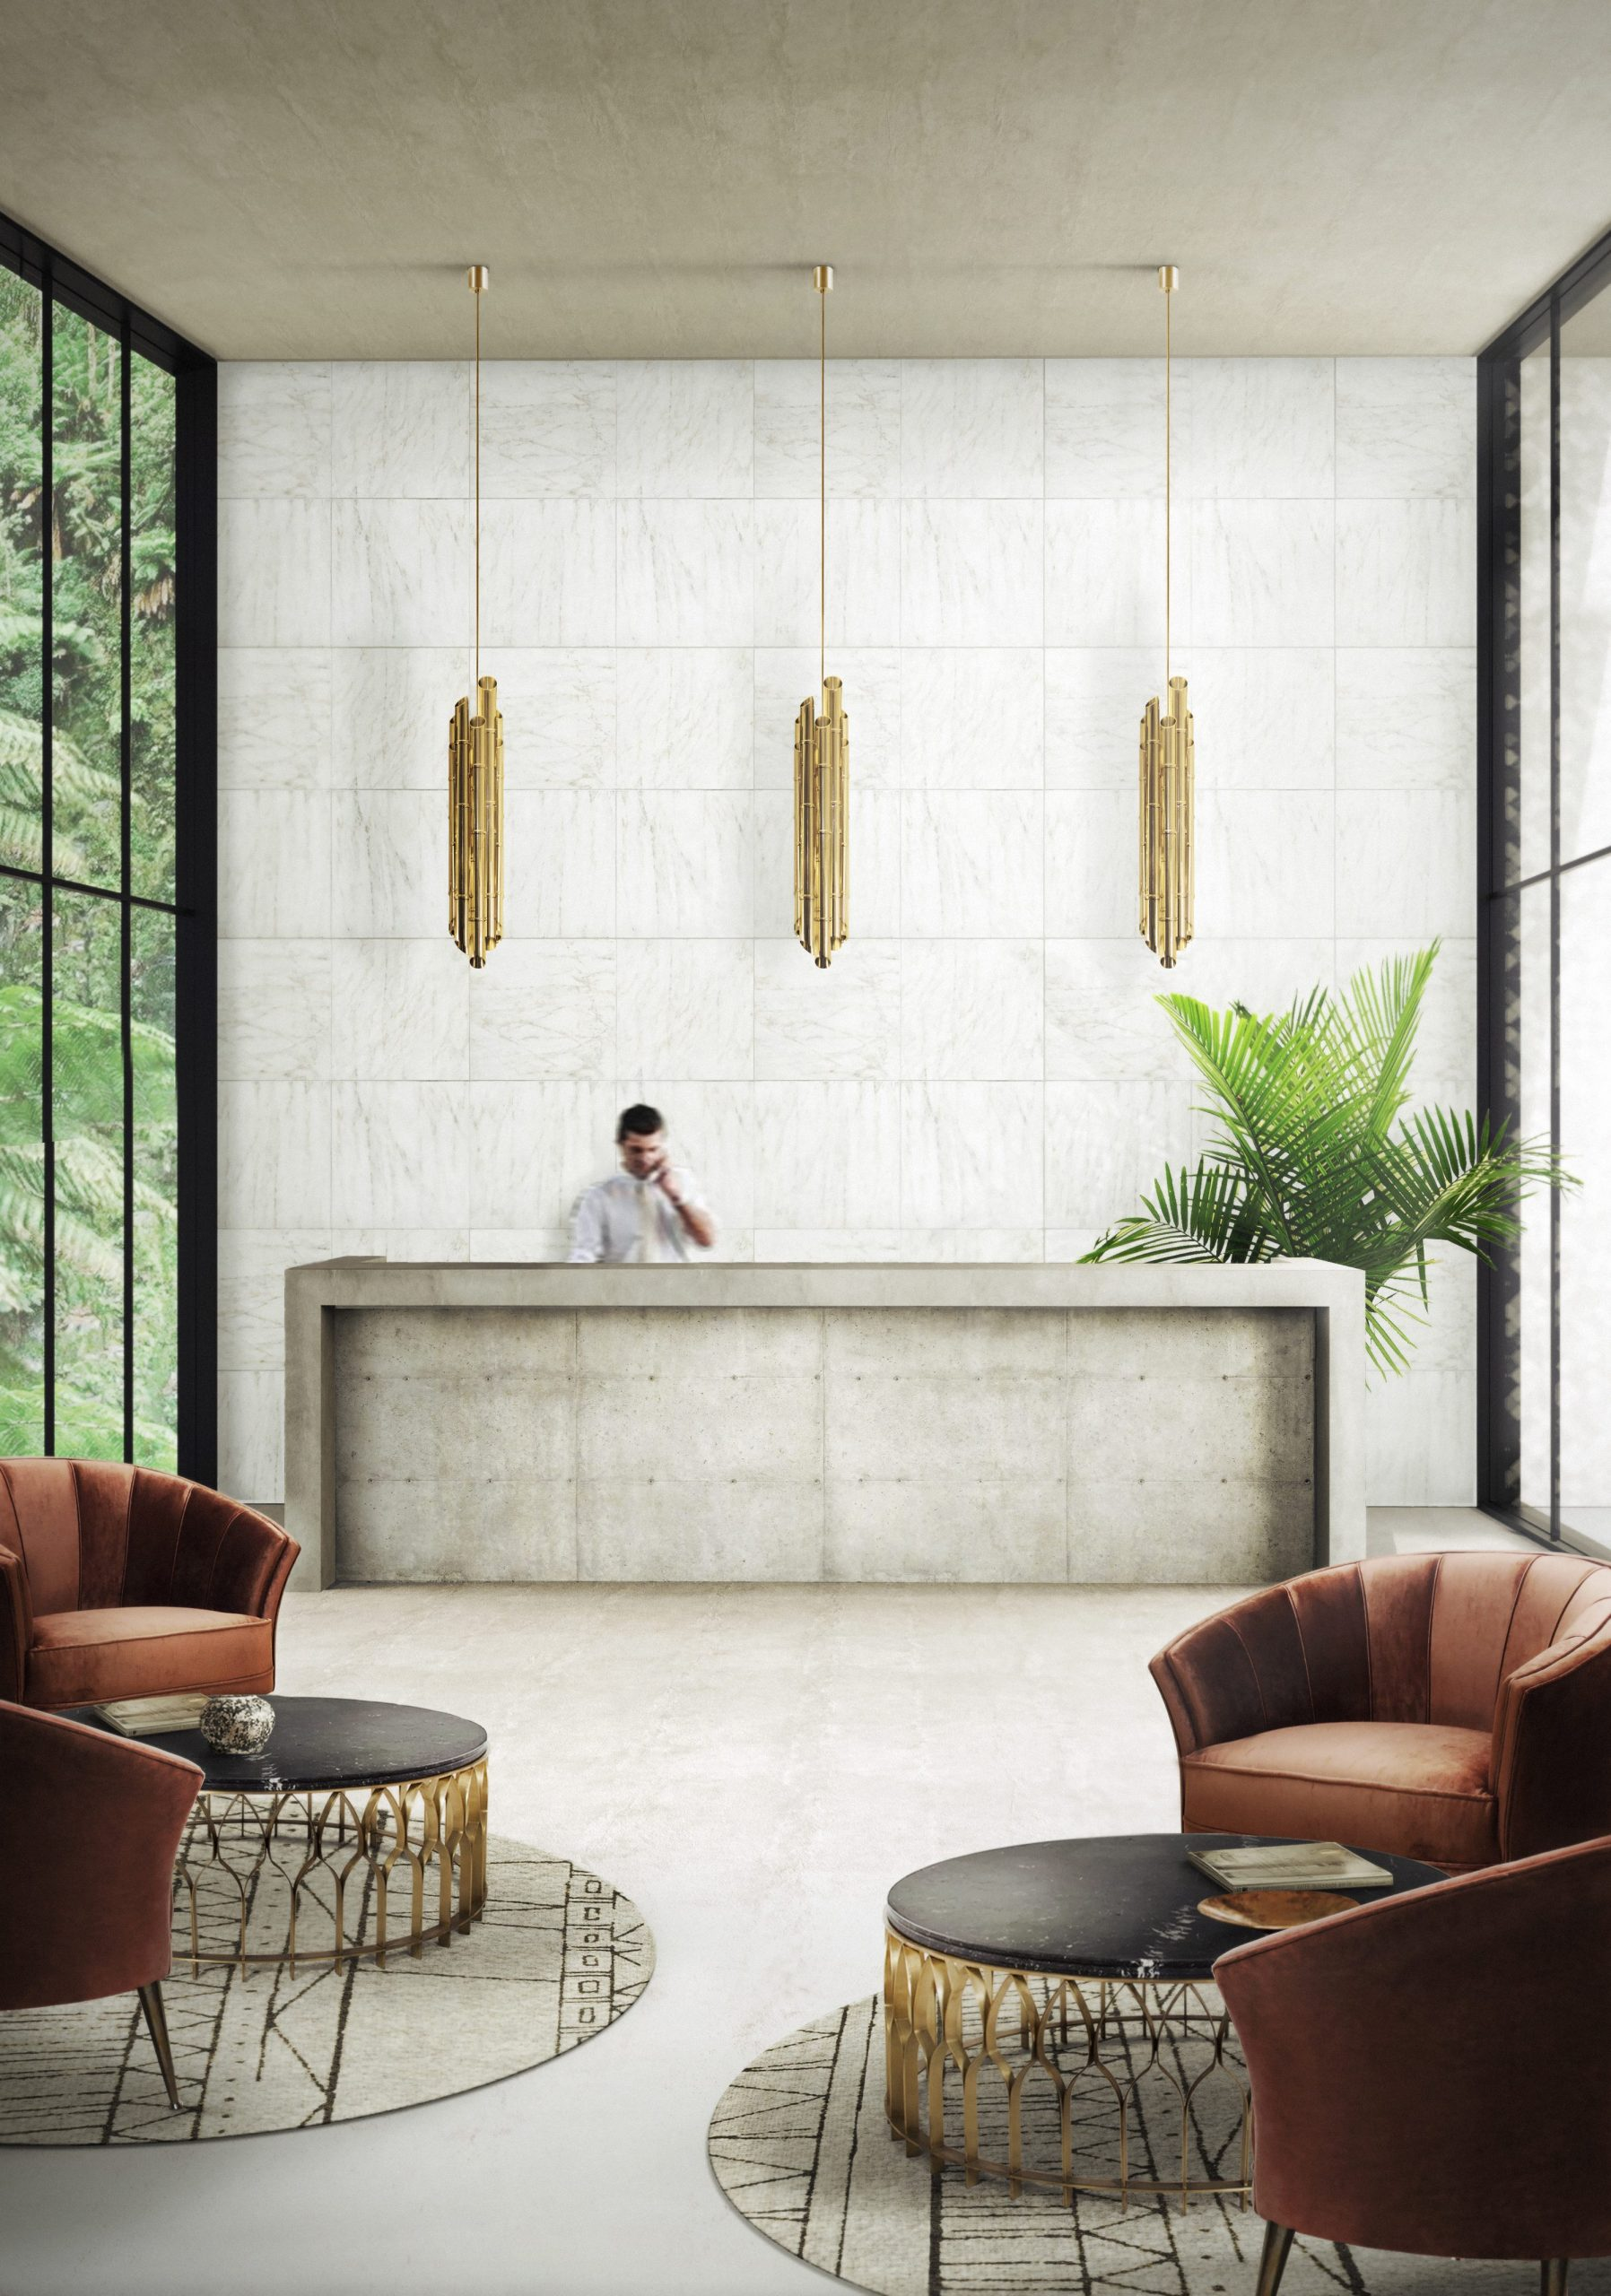 Hotel Lobbies and Waiting Spaces: A List Of 20 Modern Armchairs  modern armchairs Hotel Lobbies And Waiting Spaces: A List Of 20 Modern Armchairs Hotel Lobbies and Waiting Spaces A List Of 20 Modern Armchairs 7 scaled